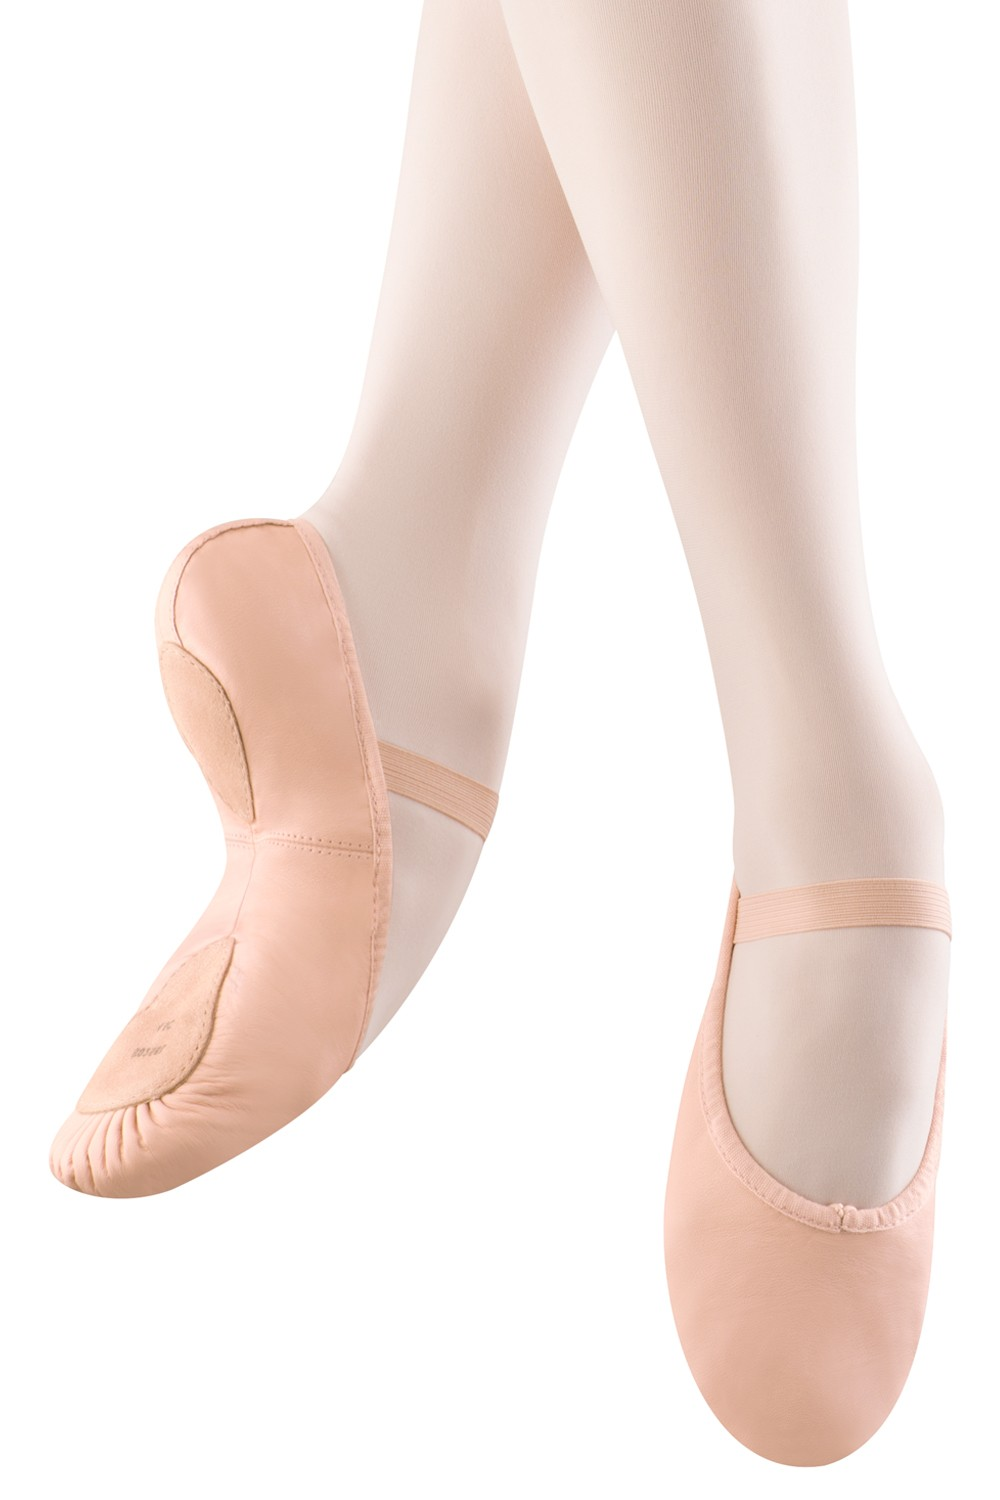 Arise De Sola Dividida  Women's Ballet Shoes